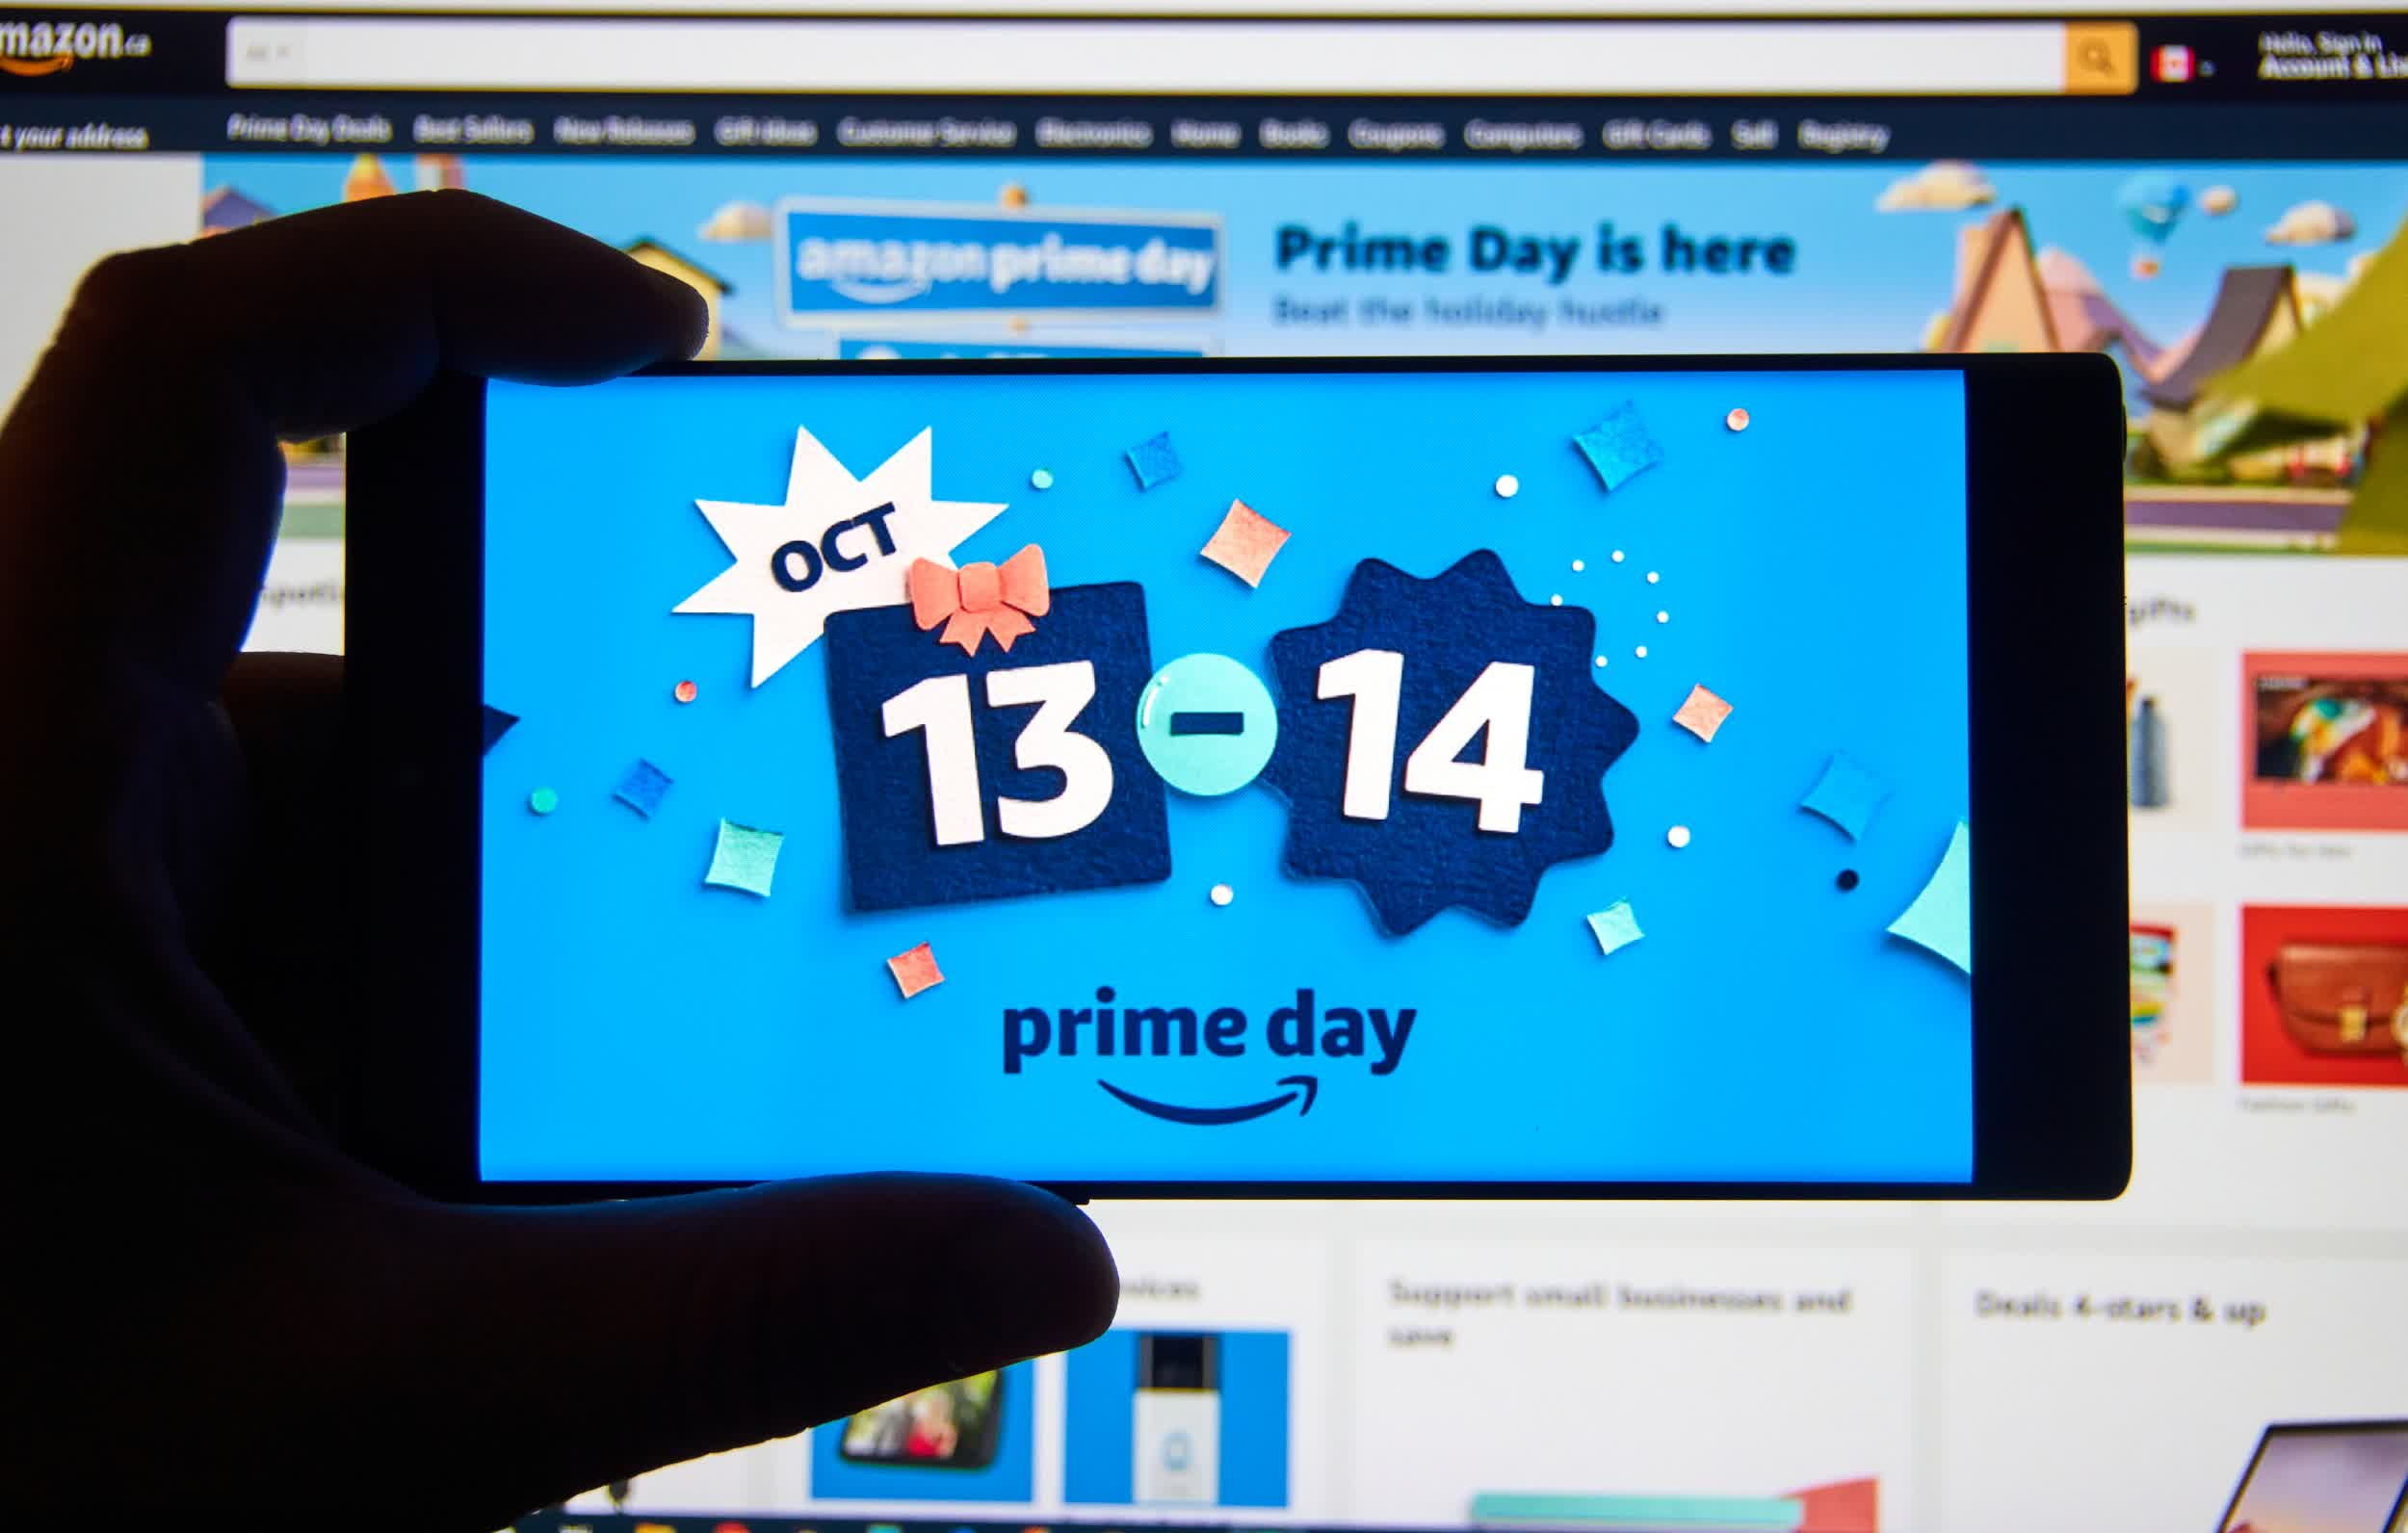 Amazon said third-party sellers surpassed $3.5 billion in sales during Prime Day